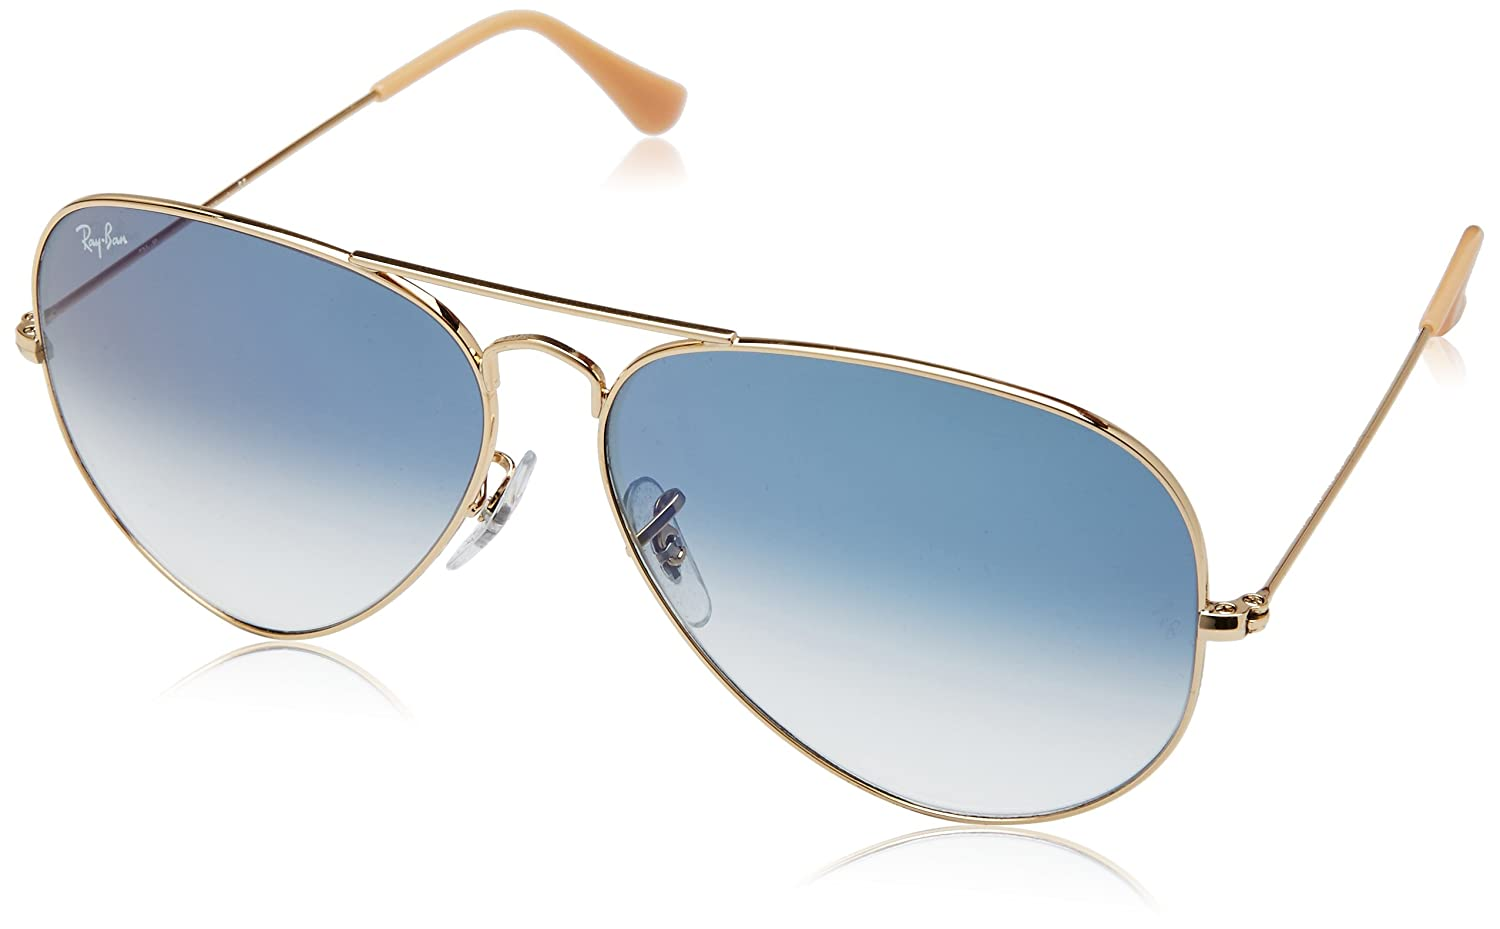 10ce68be251 Ray-Ban Aviator Men s Sunglasses (Golden and Blue)  Amazon.in  Clothing    Accessories